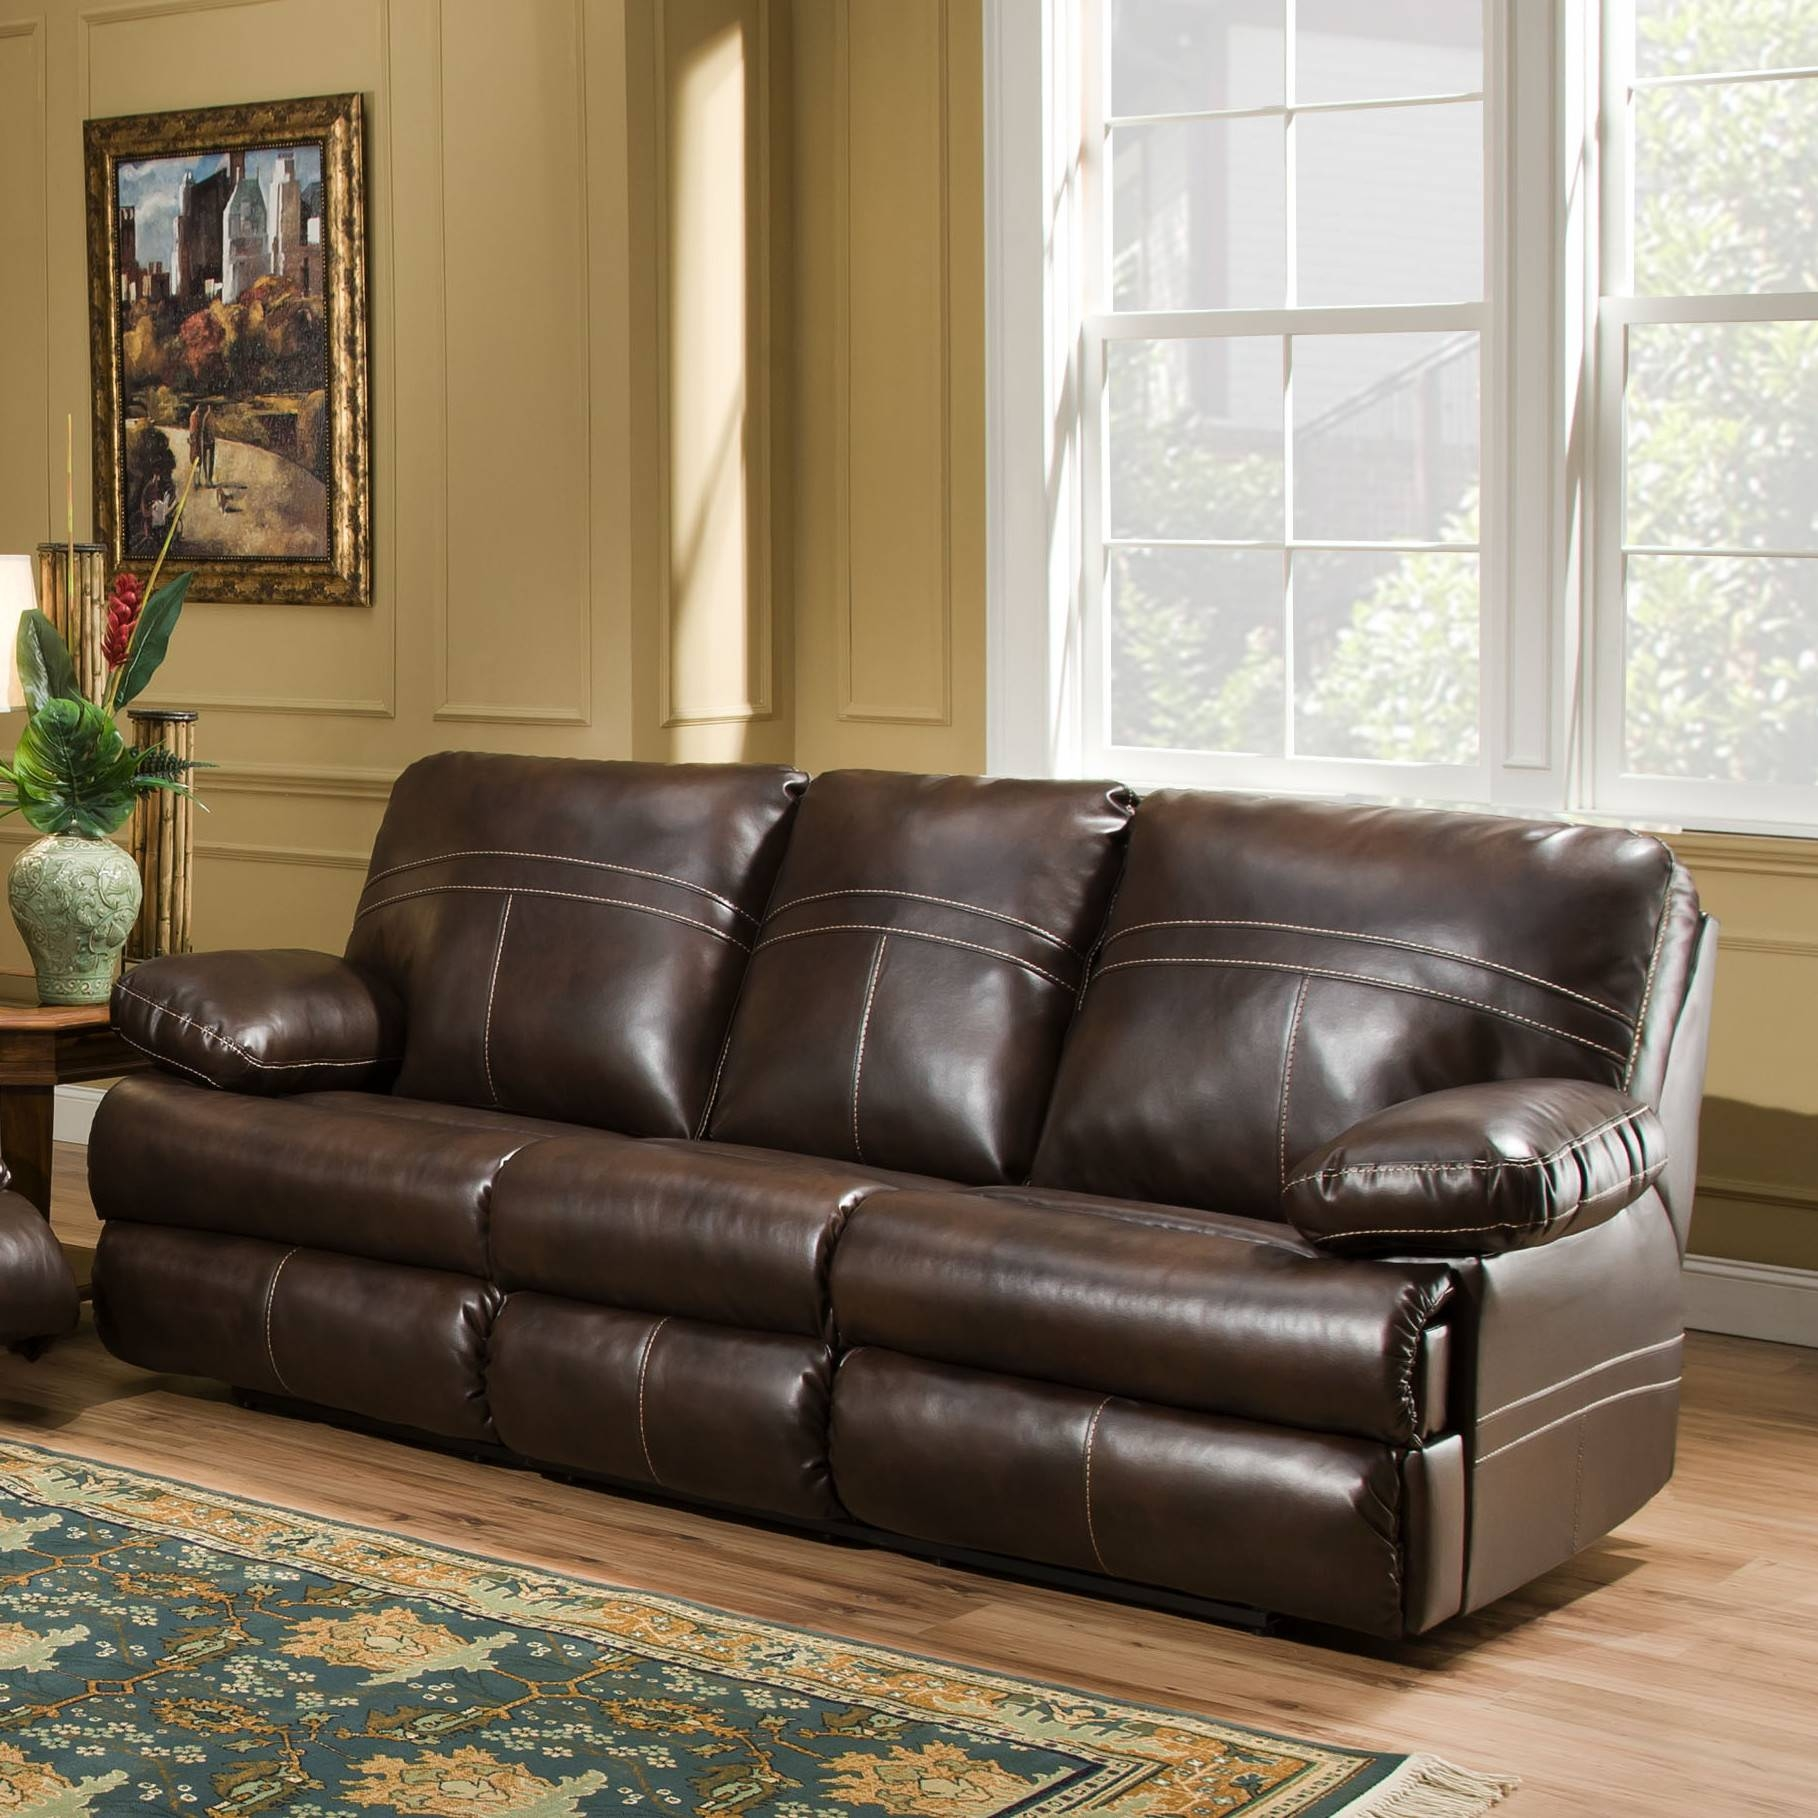 Popular Photo of Simmons Leather Sofas And Loveseats